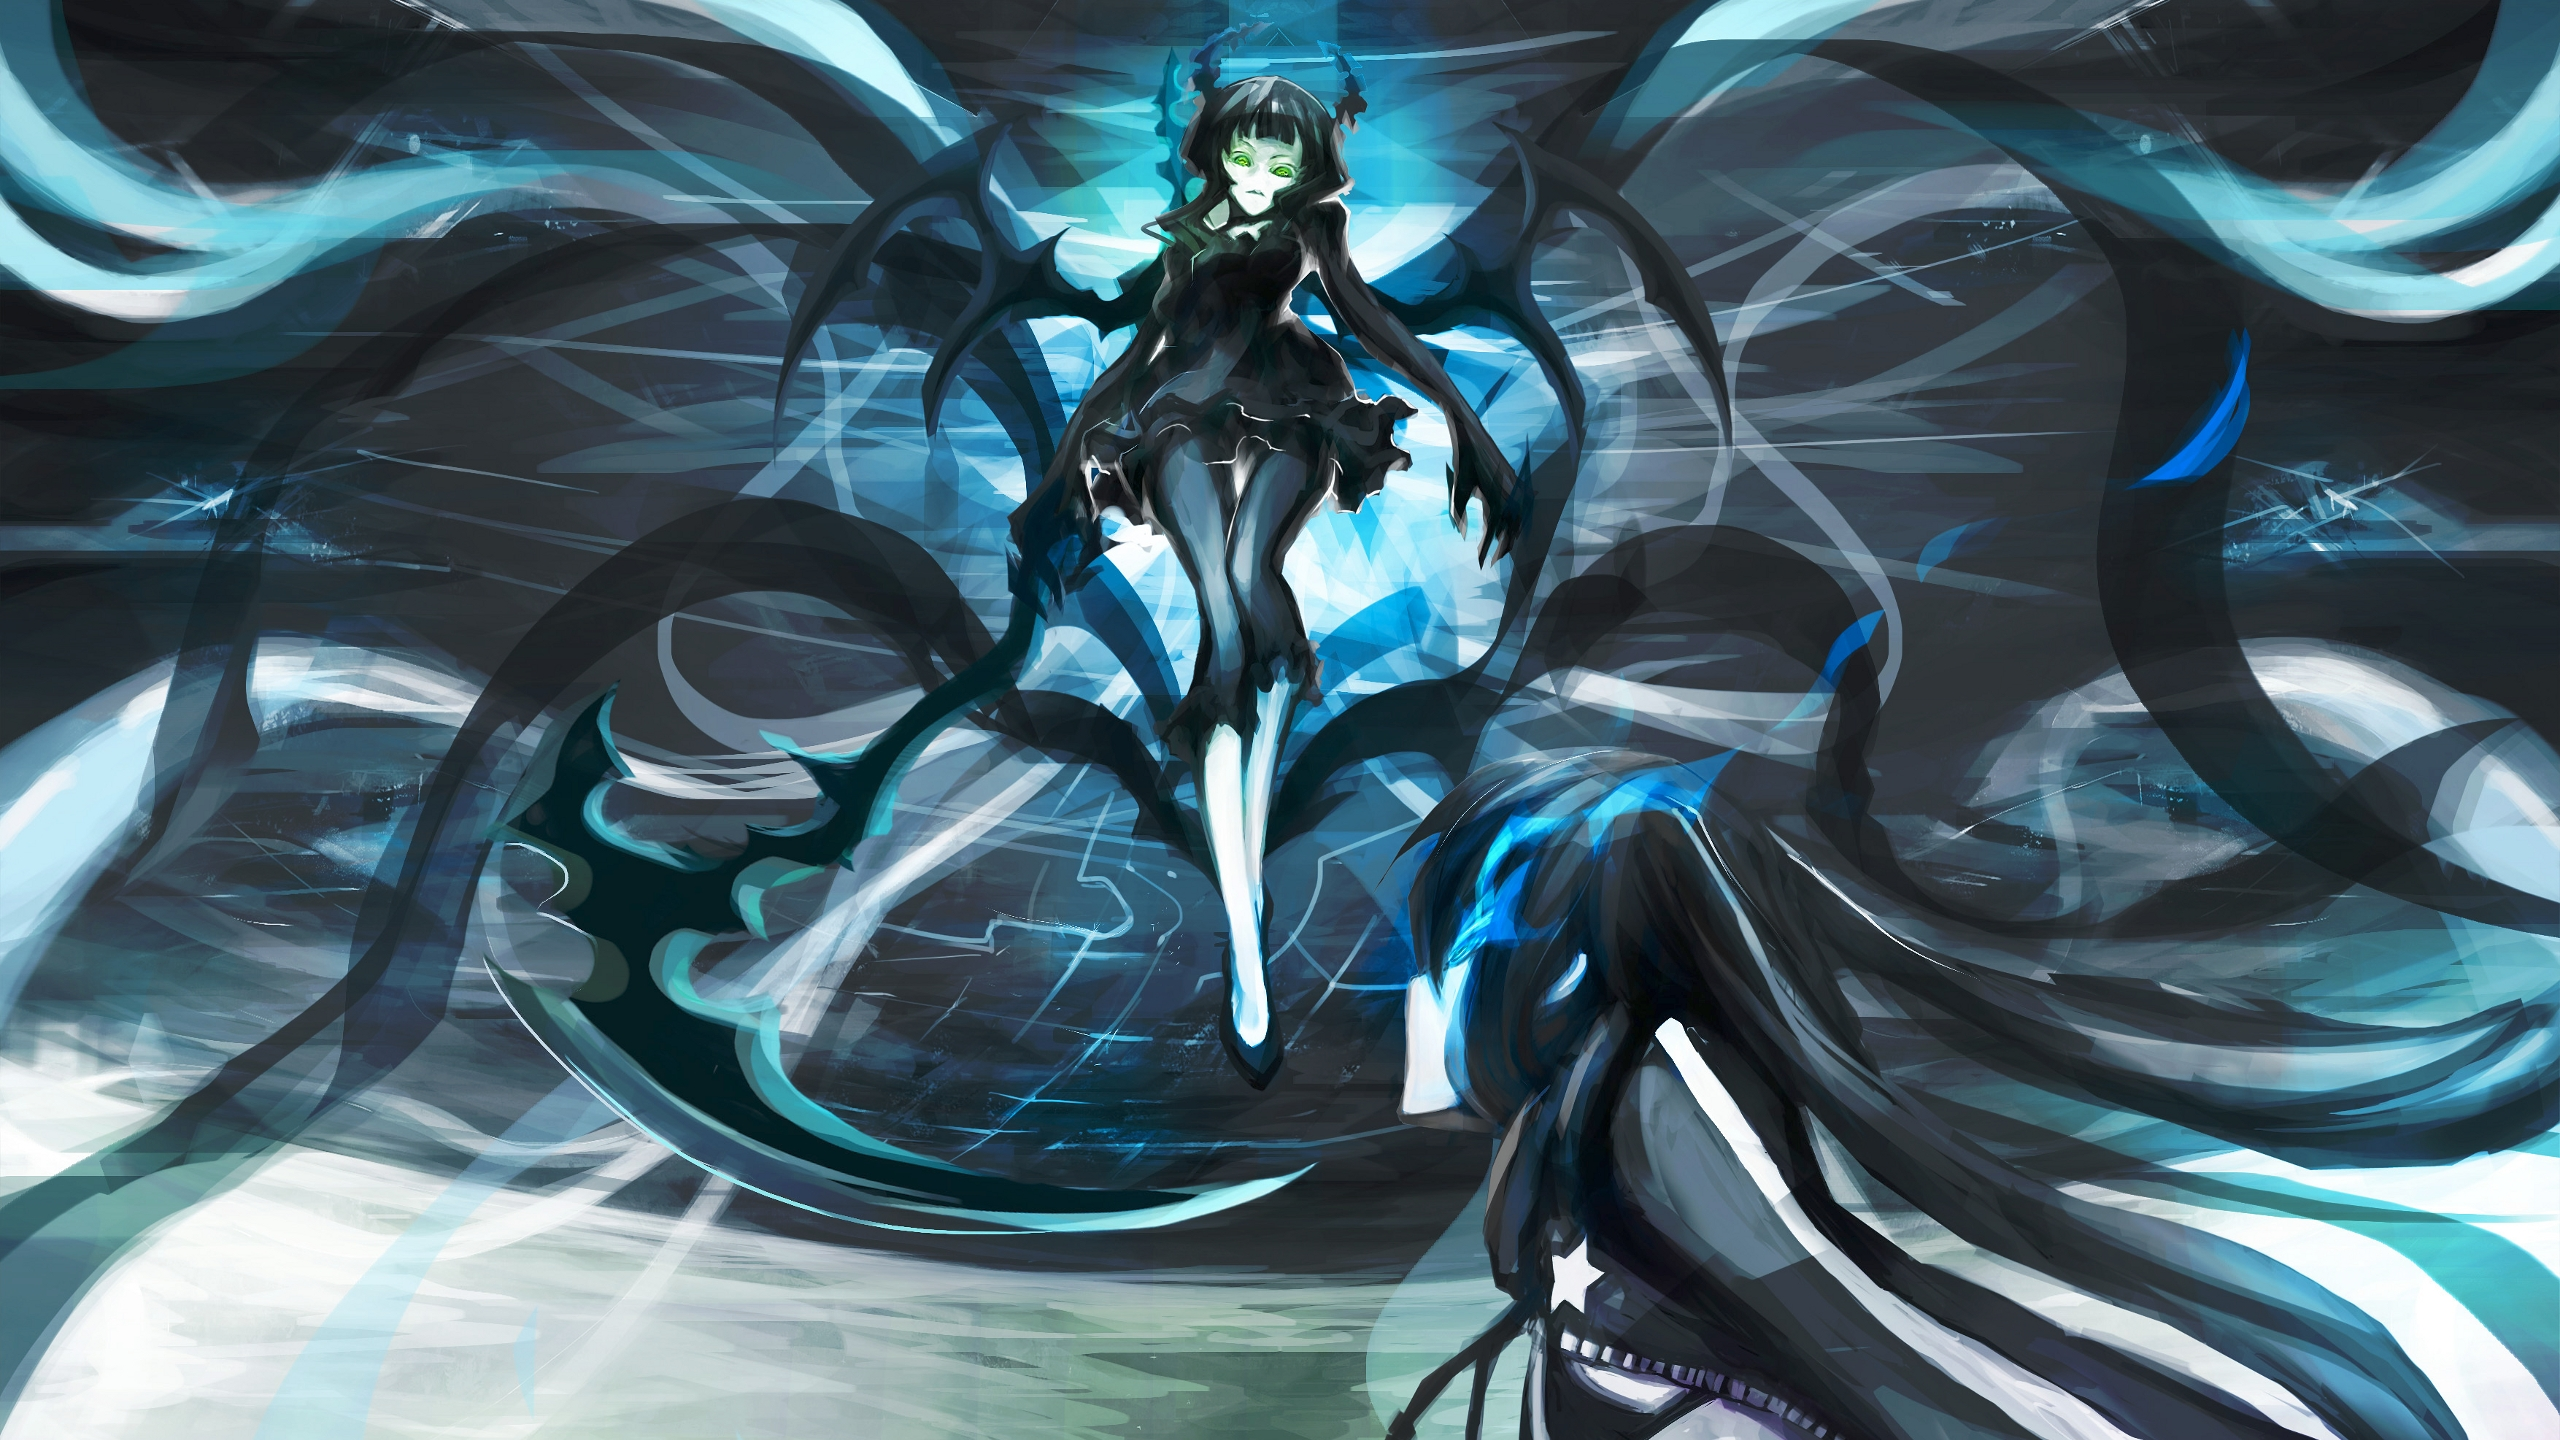 New background images environment free wallpaper - Black Rock Shooter Pic